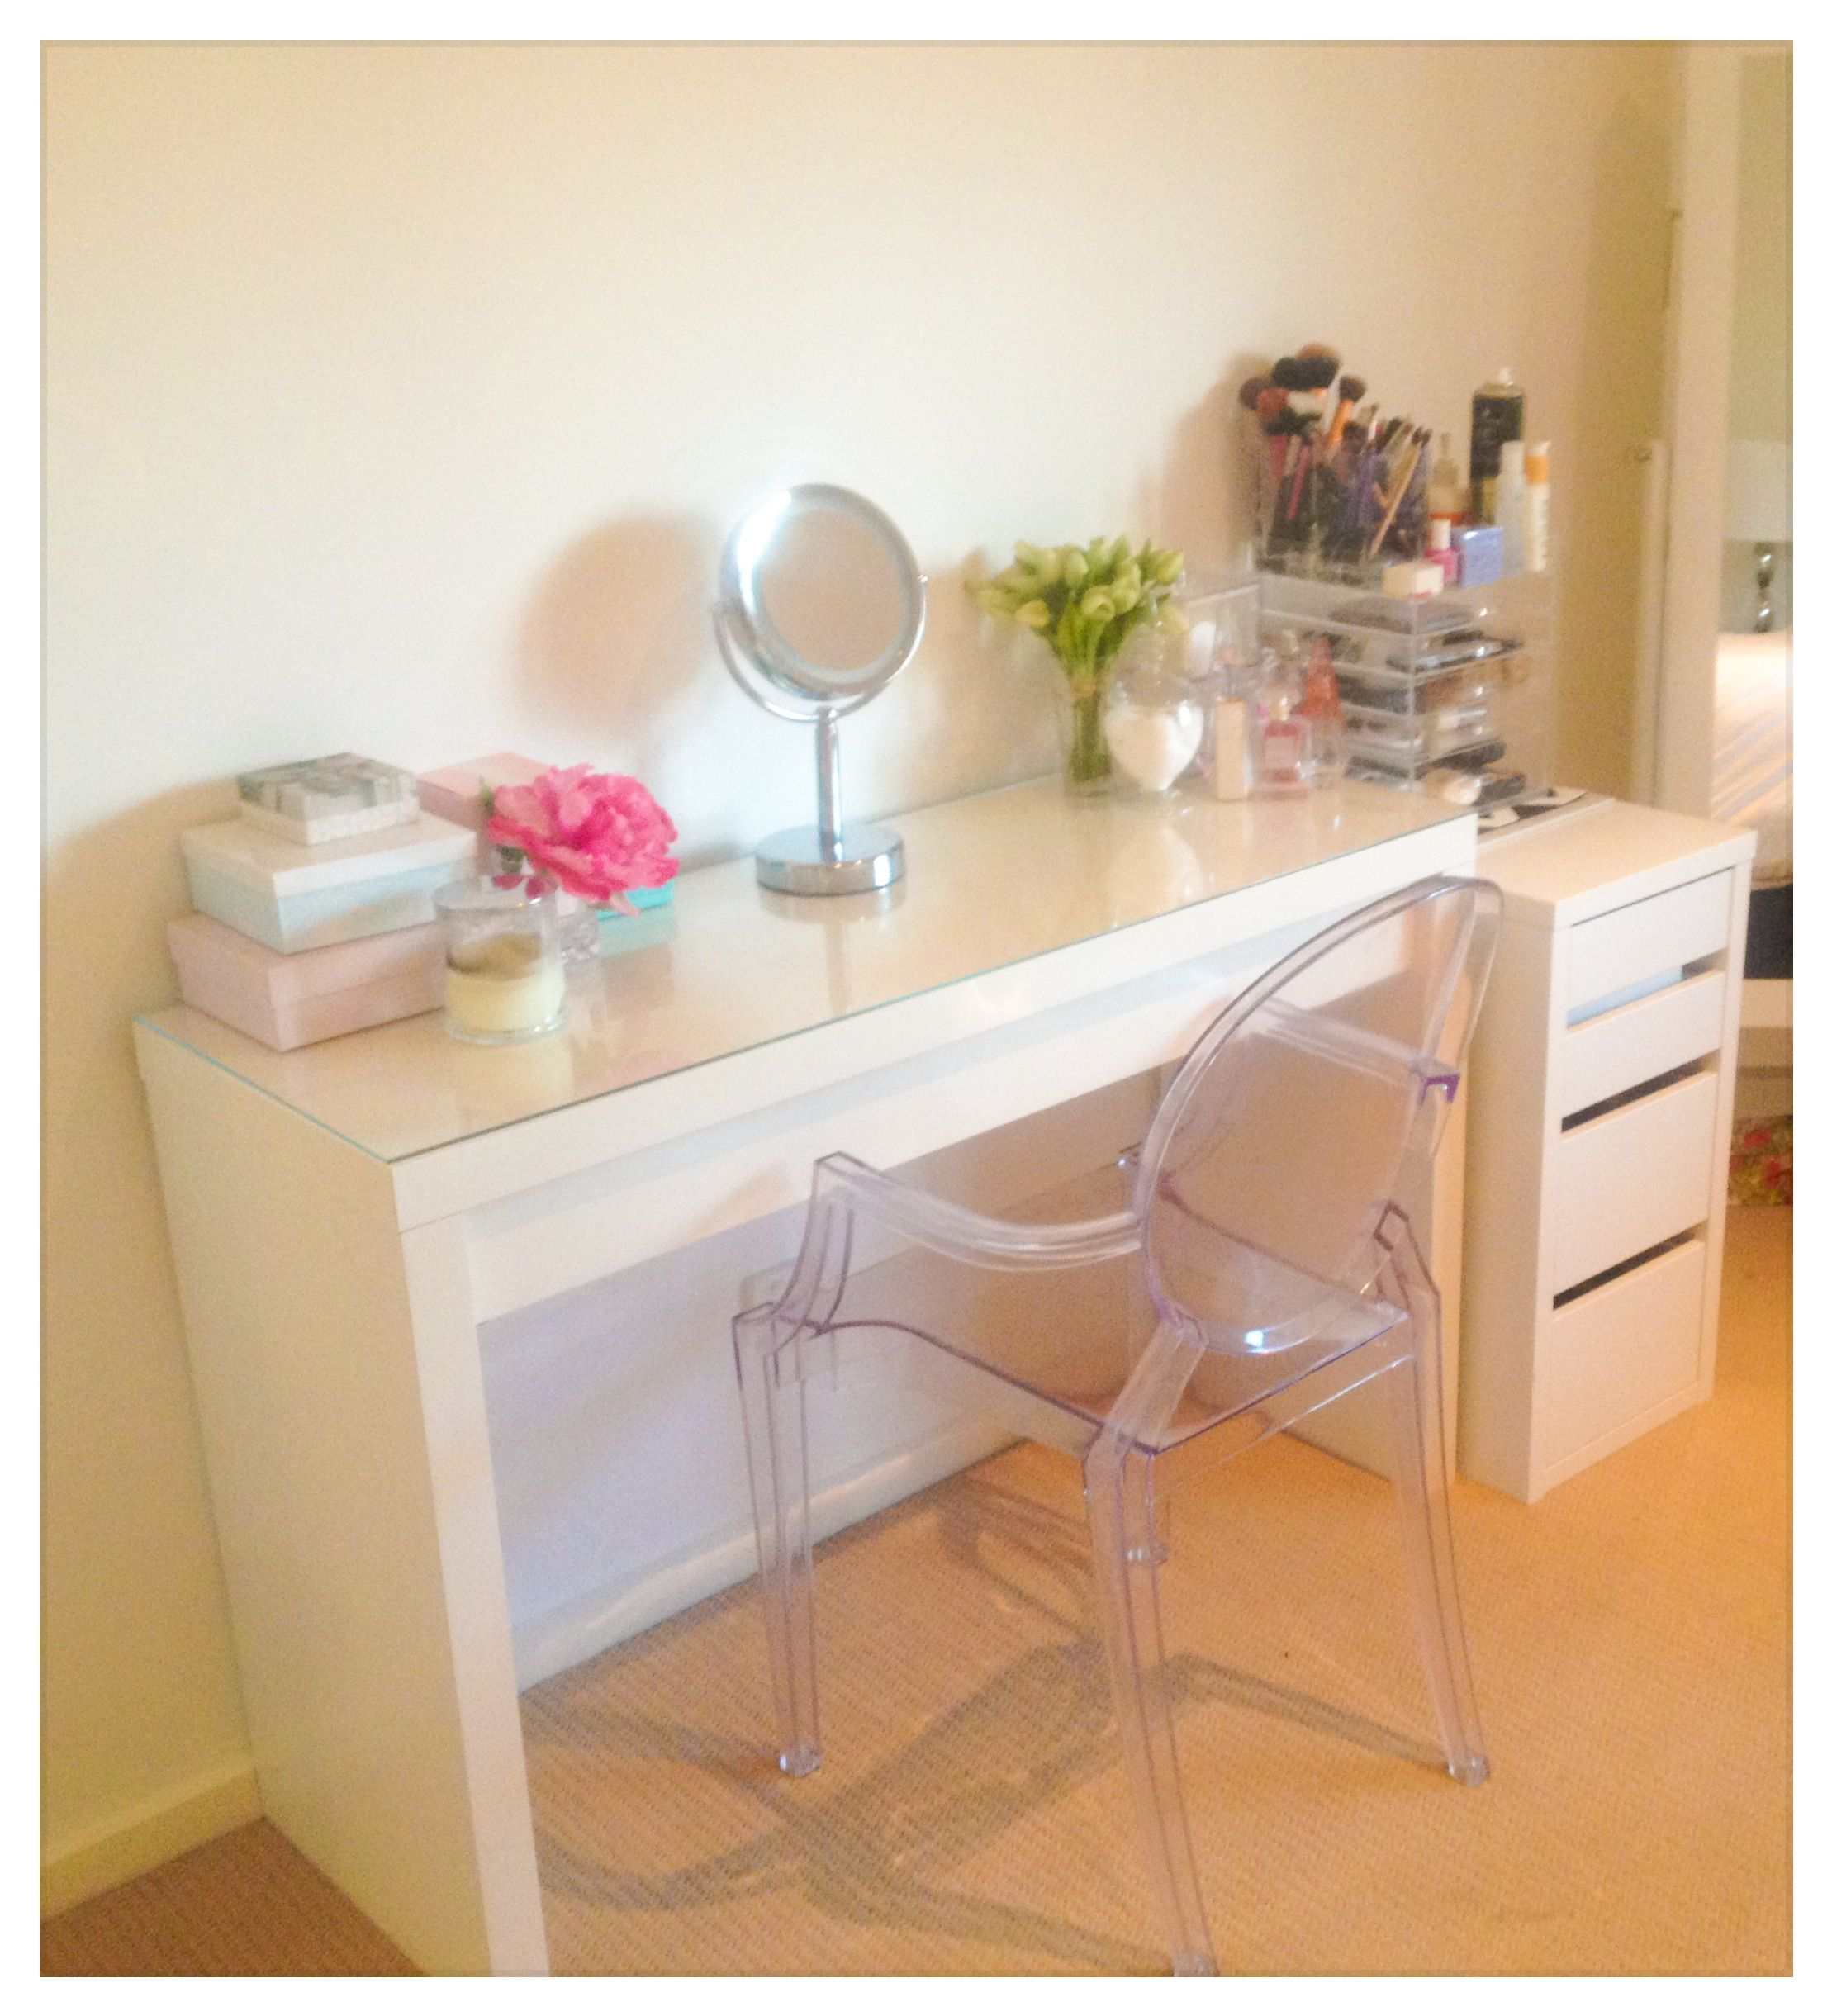 Ikea Malm Desk Used As Dressing Table For Makeup Storage With Ghost Chair Ikea Malm Vanity Makeup Storage Ma Make Up Desk Vanity Ikea Malm Desk Ikea Malm